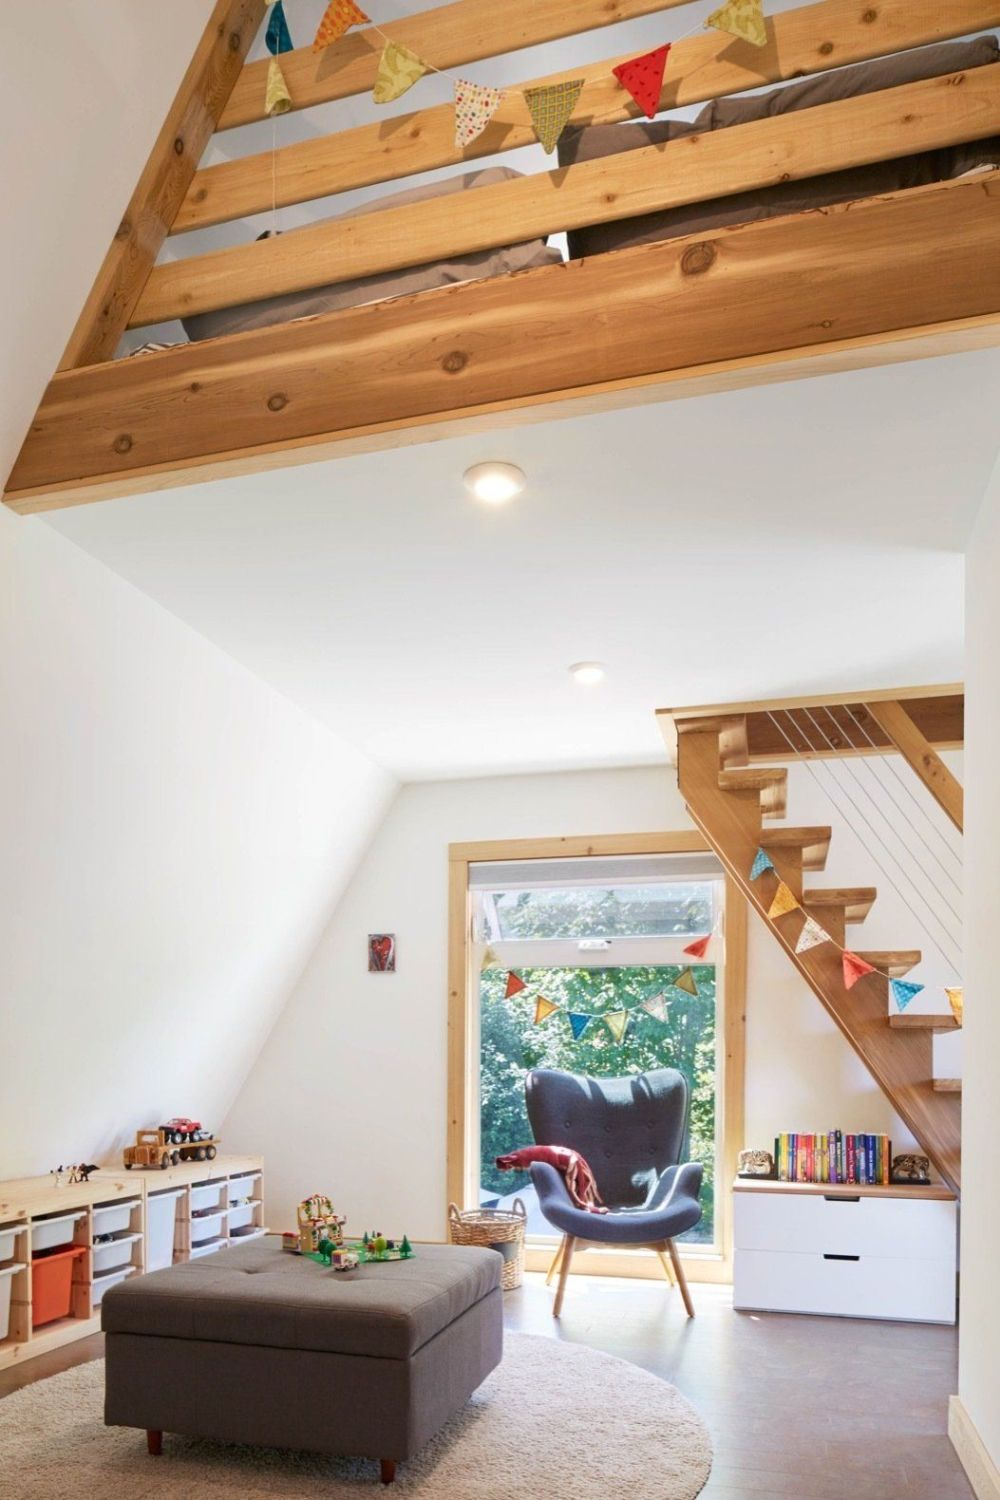 The upstairs space overlooks the living room below and the two floors are connected by a wood staircase